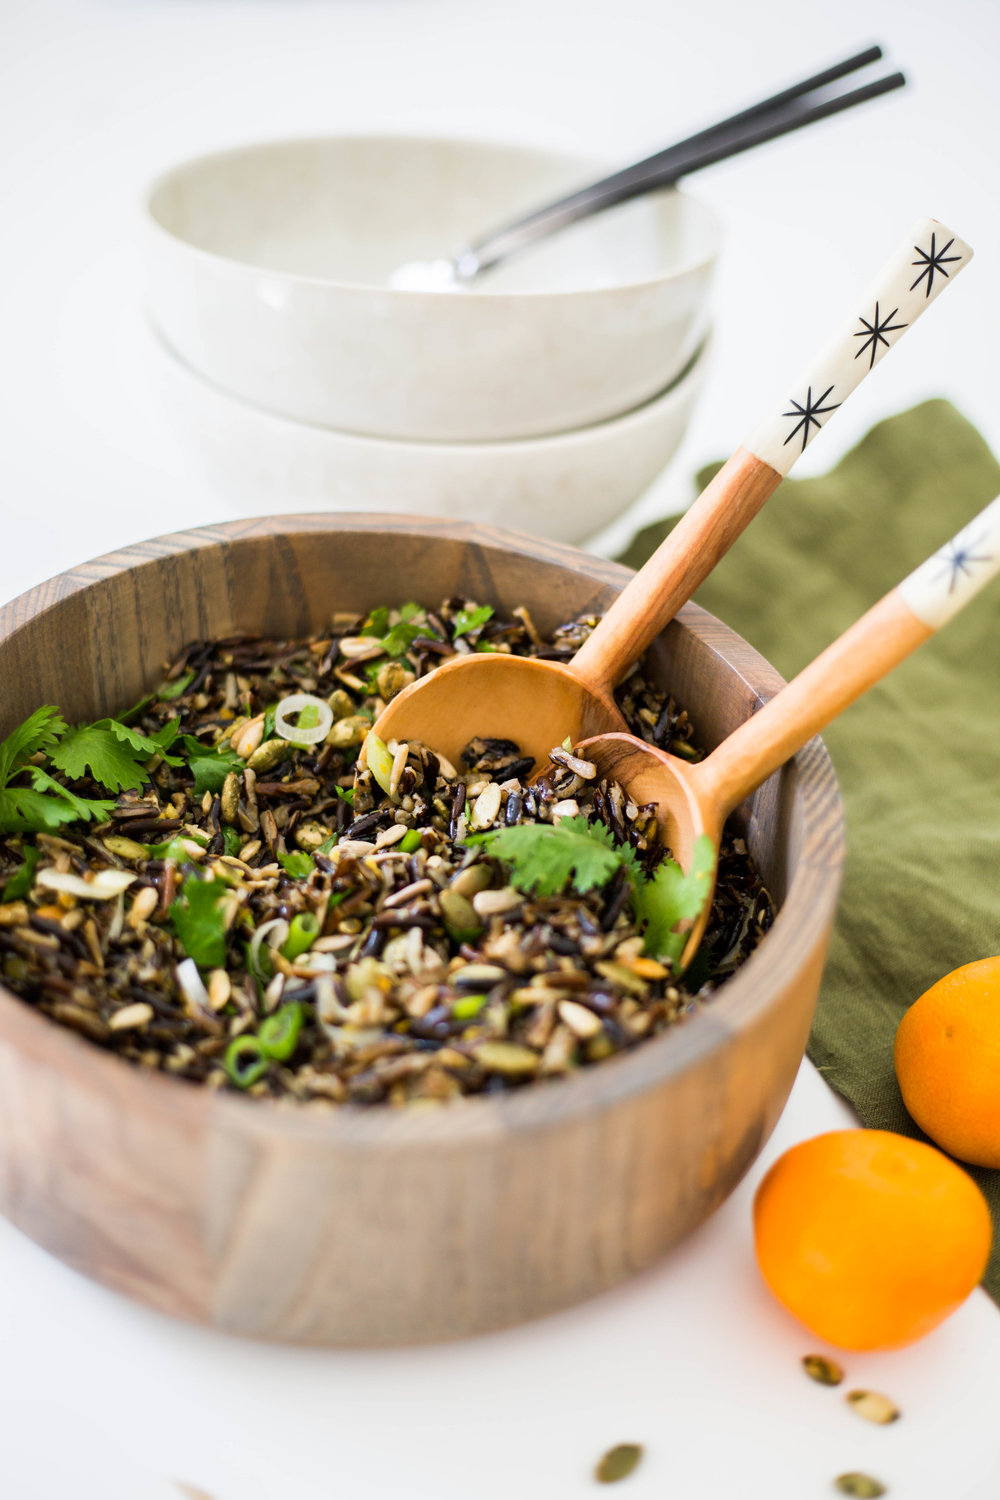 Superfood Protein-packed Wild Rice Salad #vuori #purekitchenblog #plant-based #vegan #dairyfree